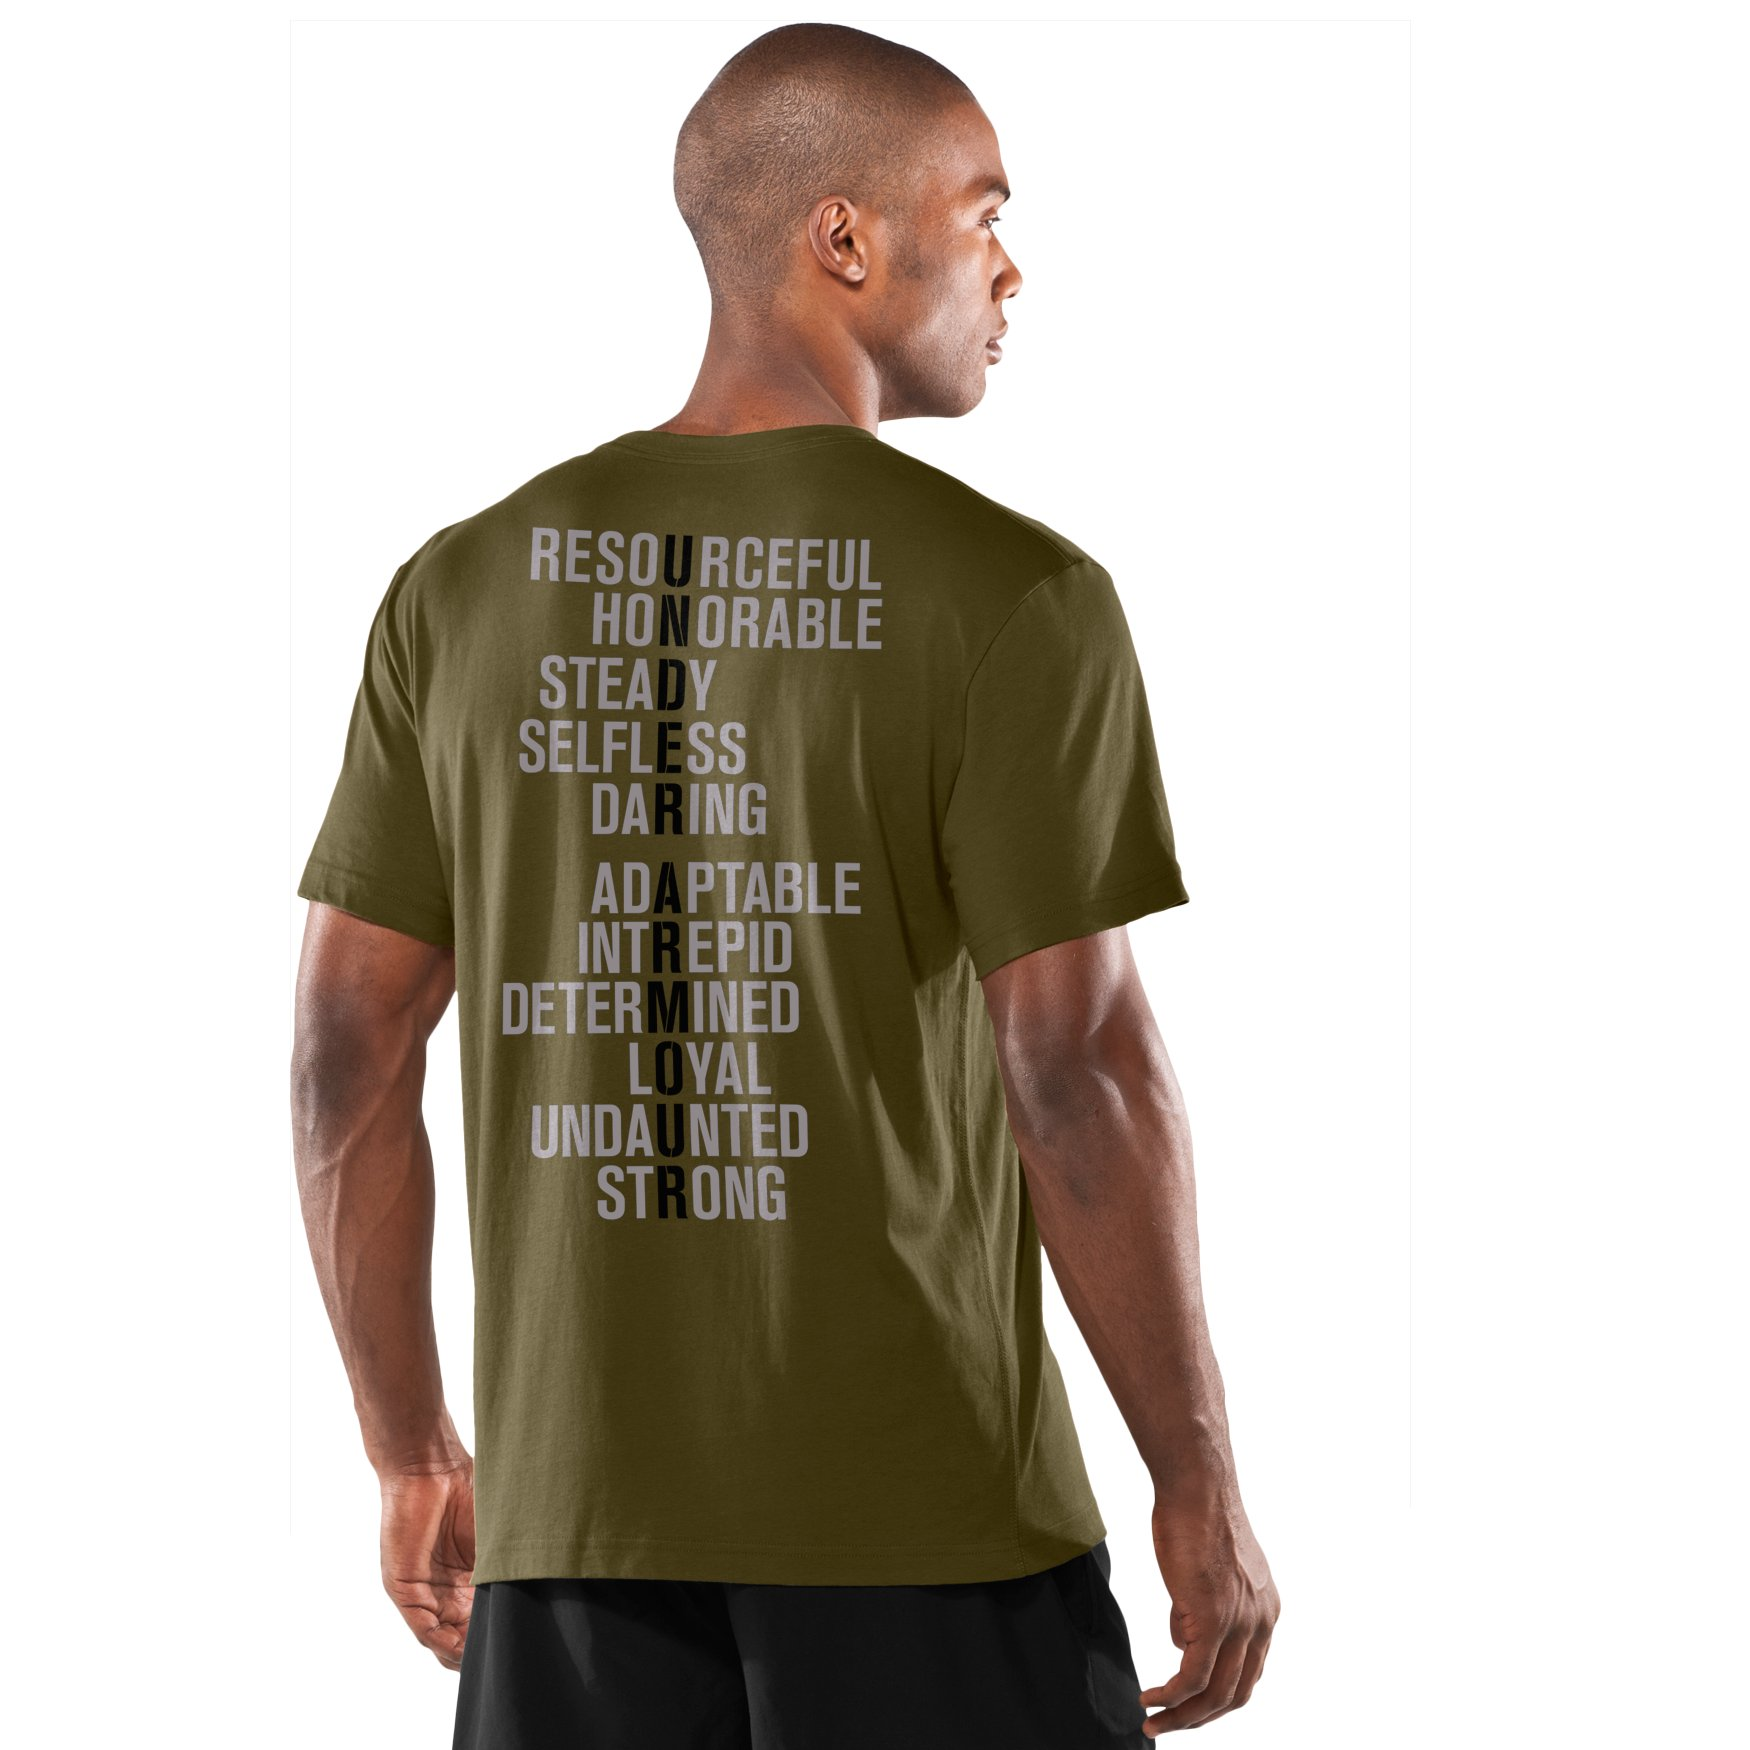 Under Armour Mens UA Tactical Attributes T Shirt-Shirt Medium Marine OD Green